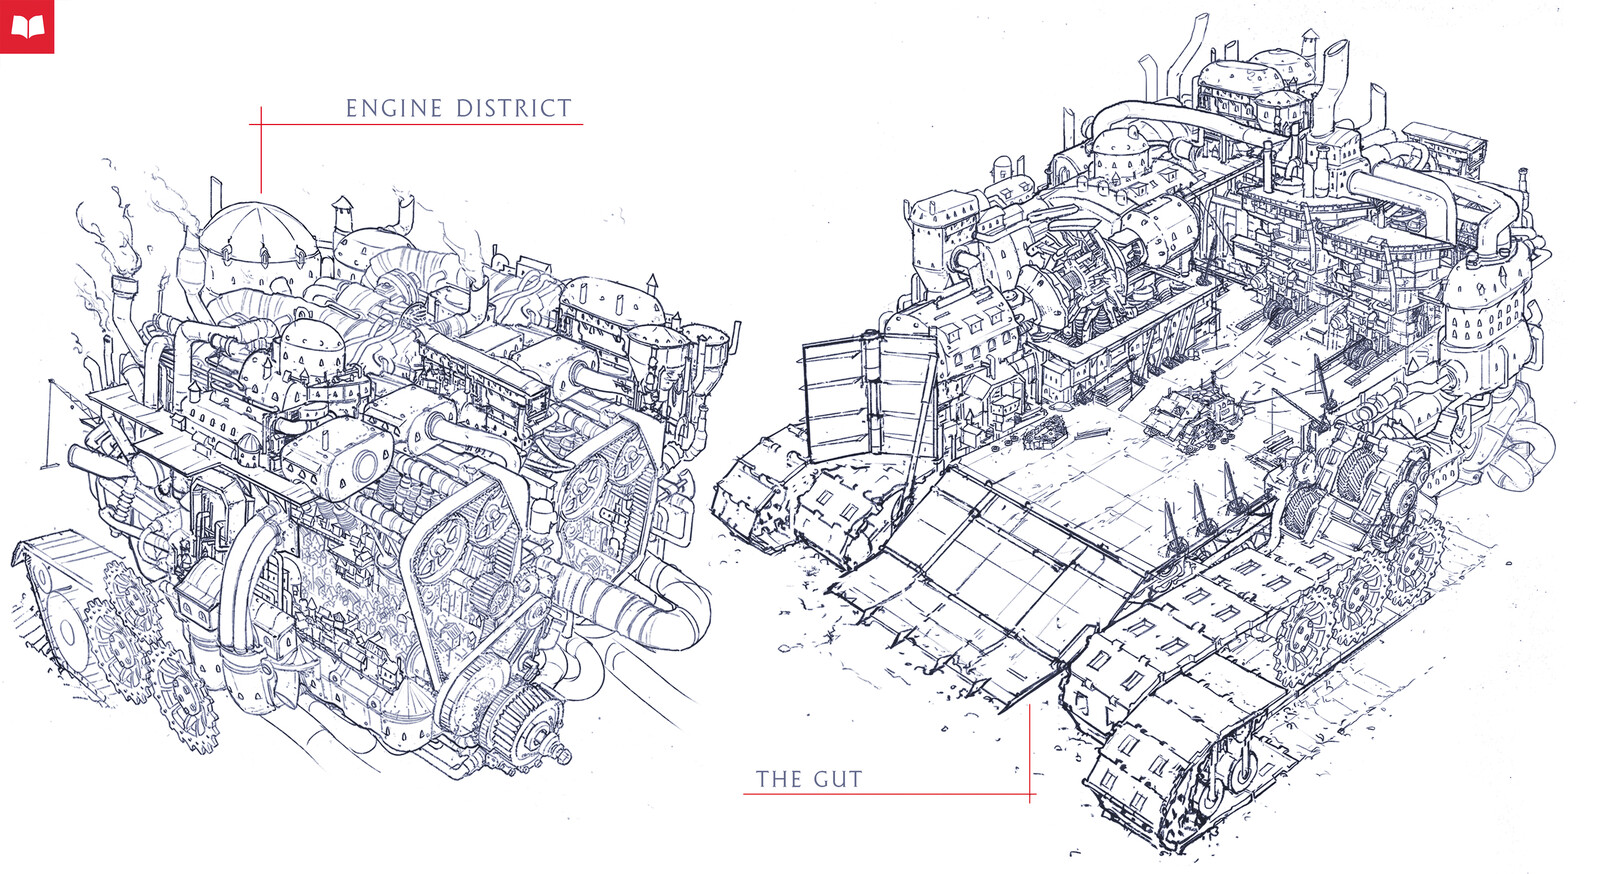 The Illustrated World of Mortal Engines - London's 'Engine District' and 'G.U.T.' (Great Under Tier)